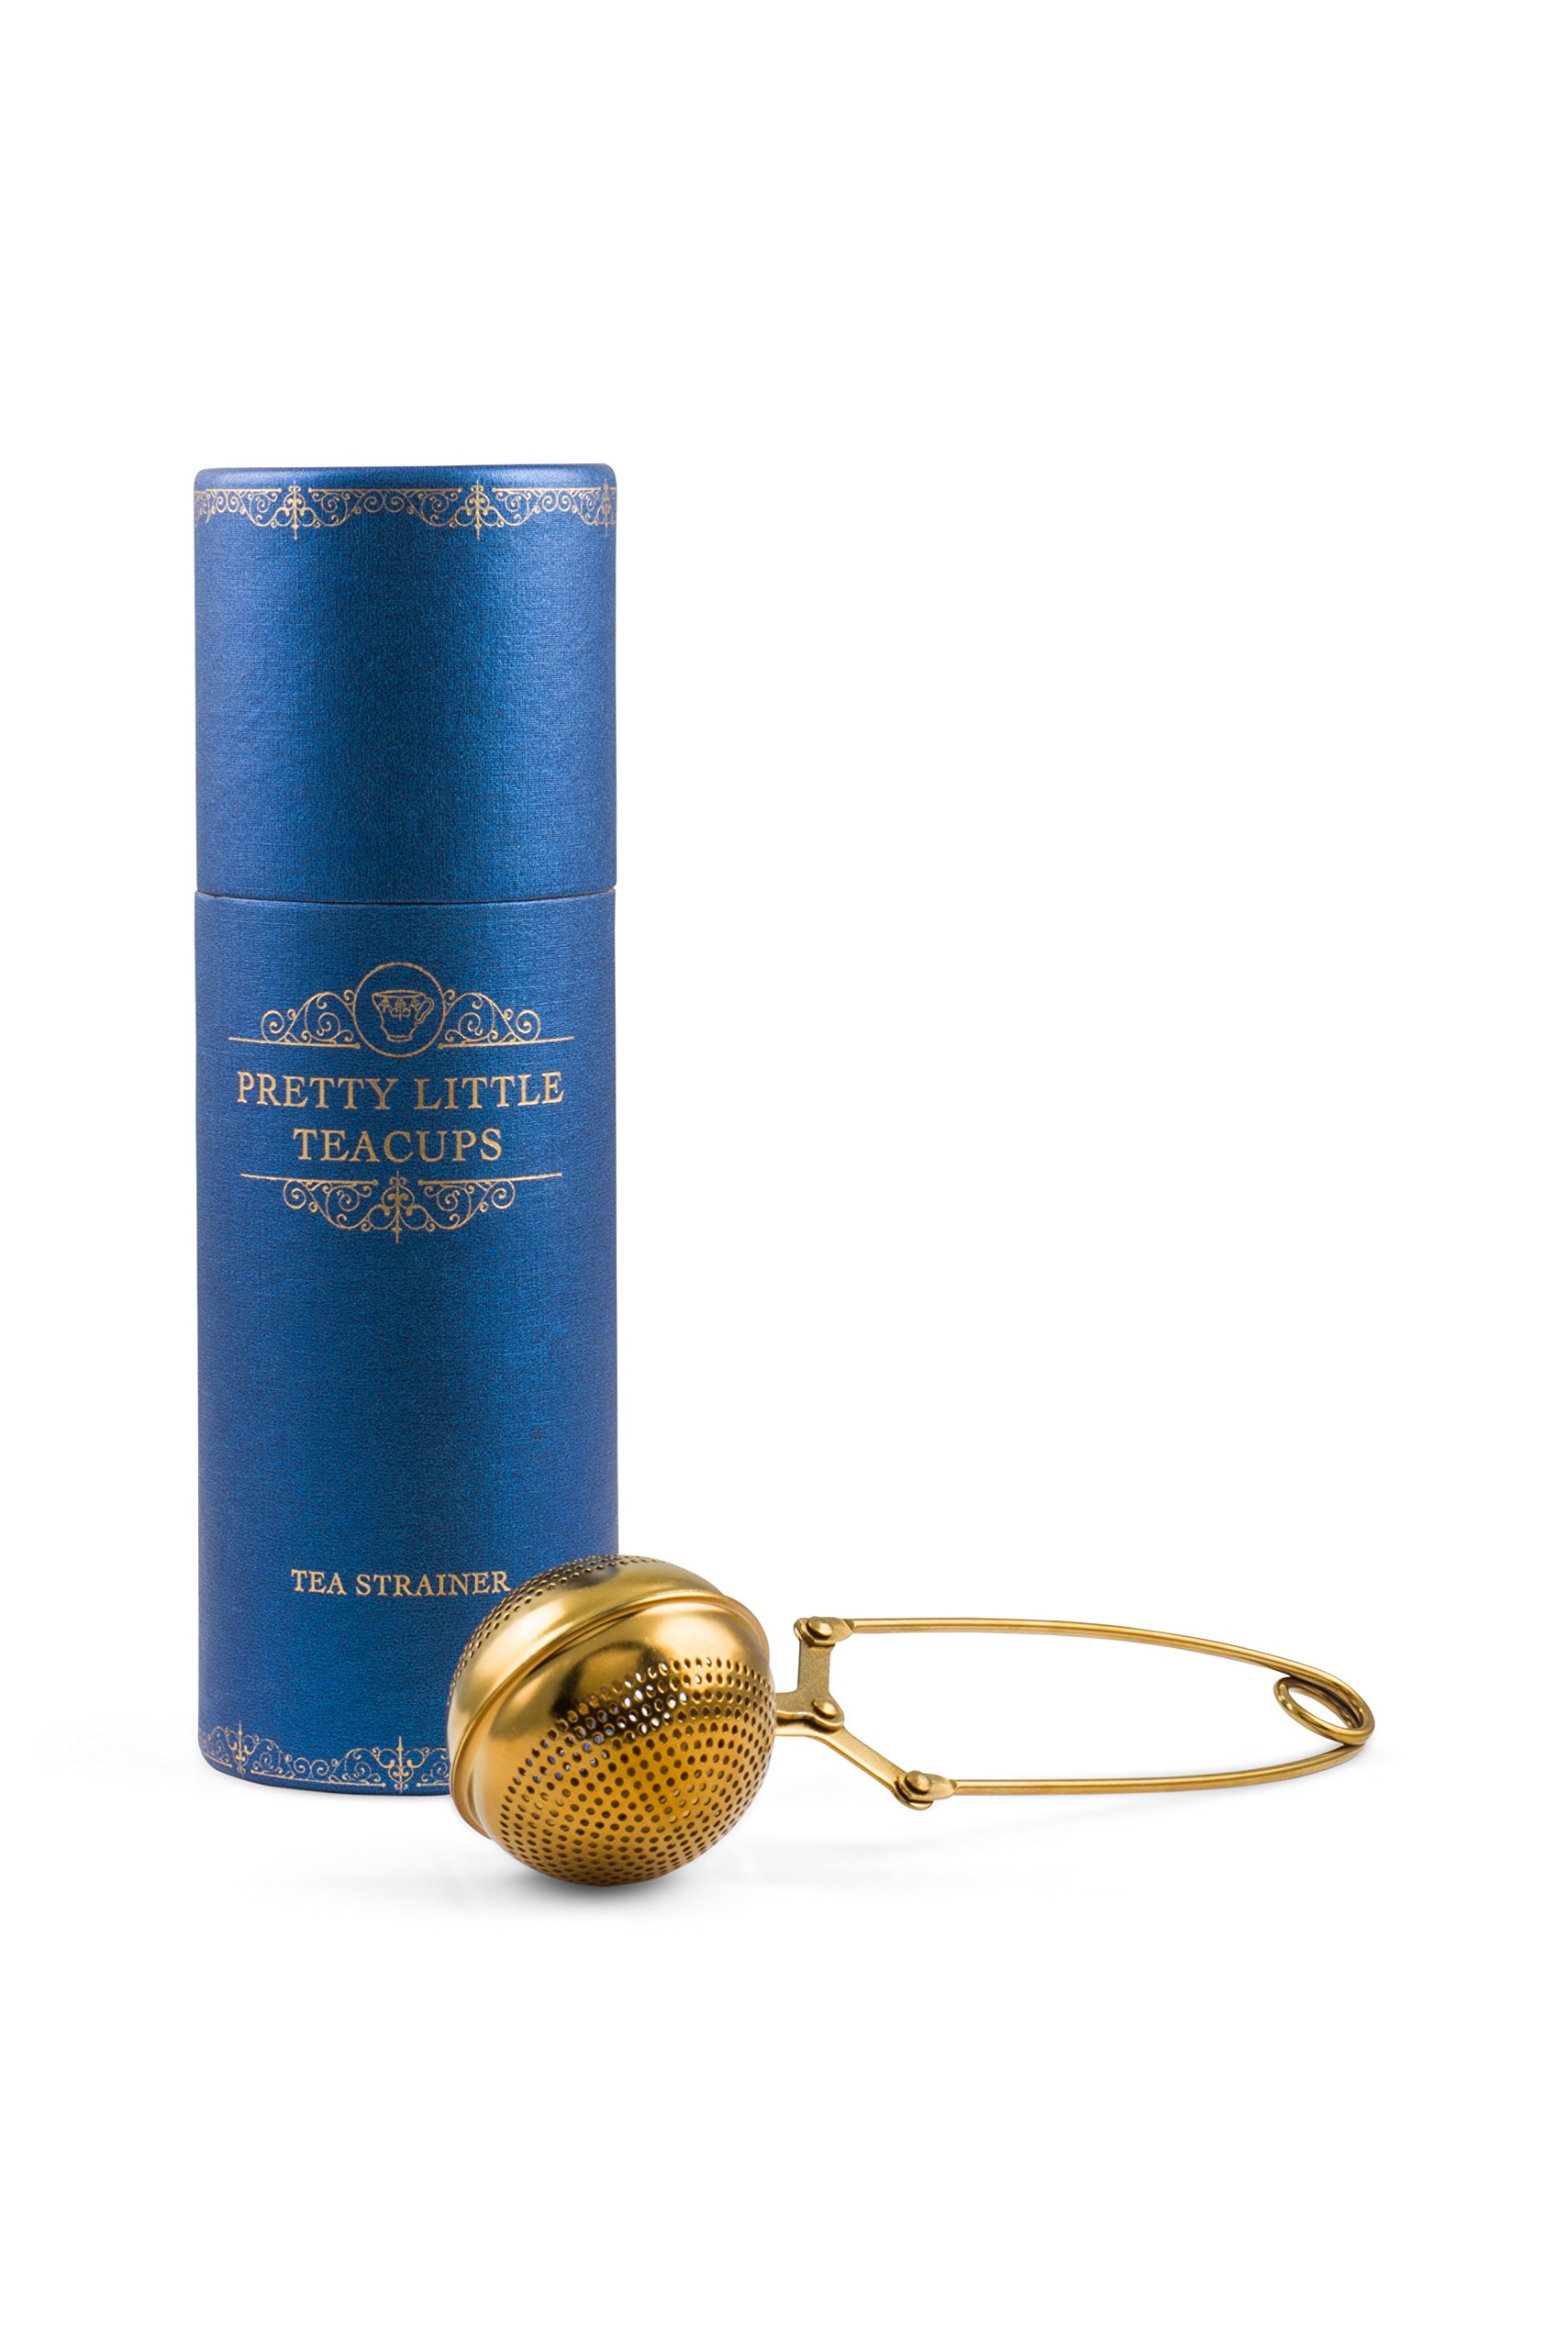 Pretty Little Teacups Loose Leaf Tea Infuser Gold